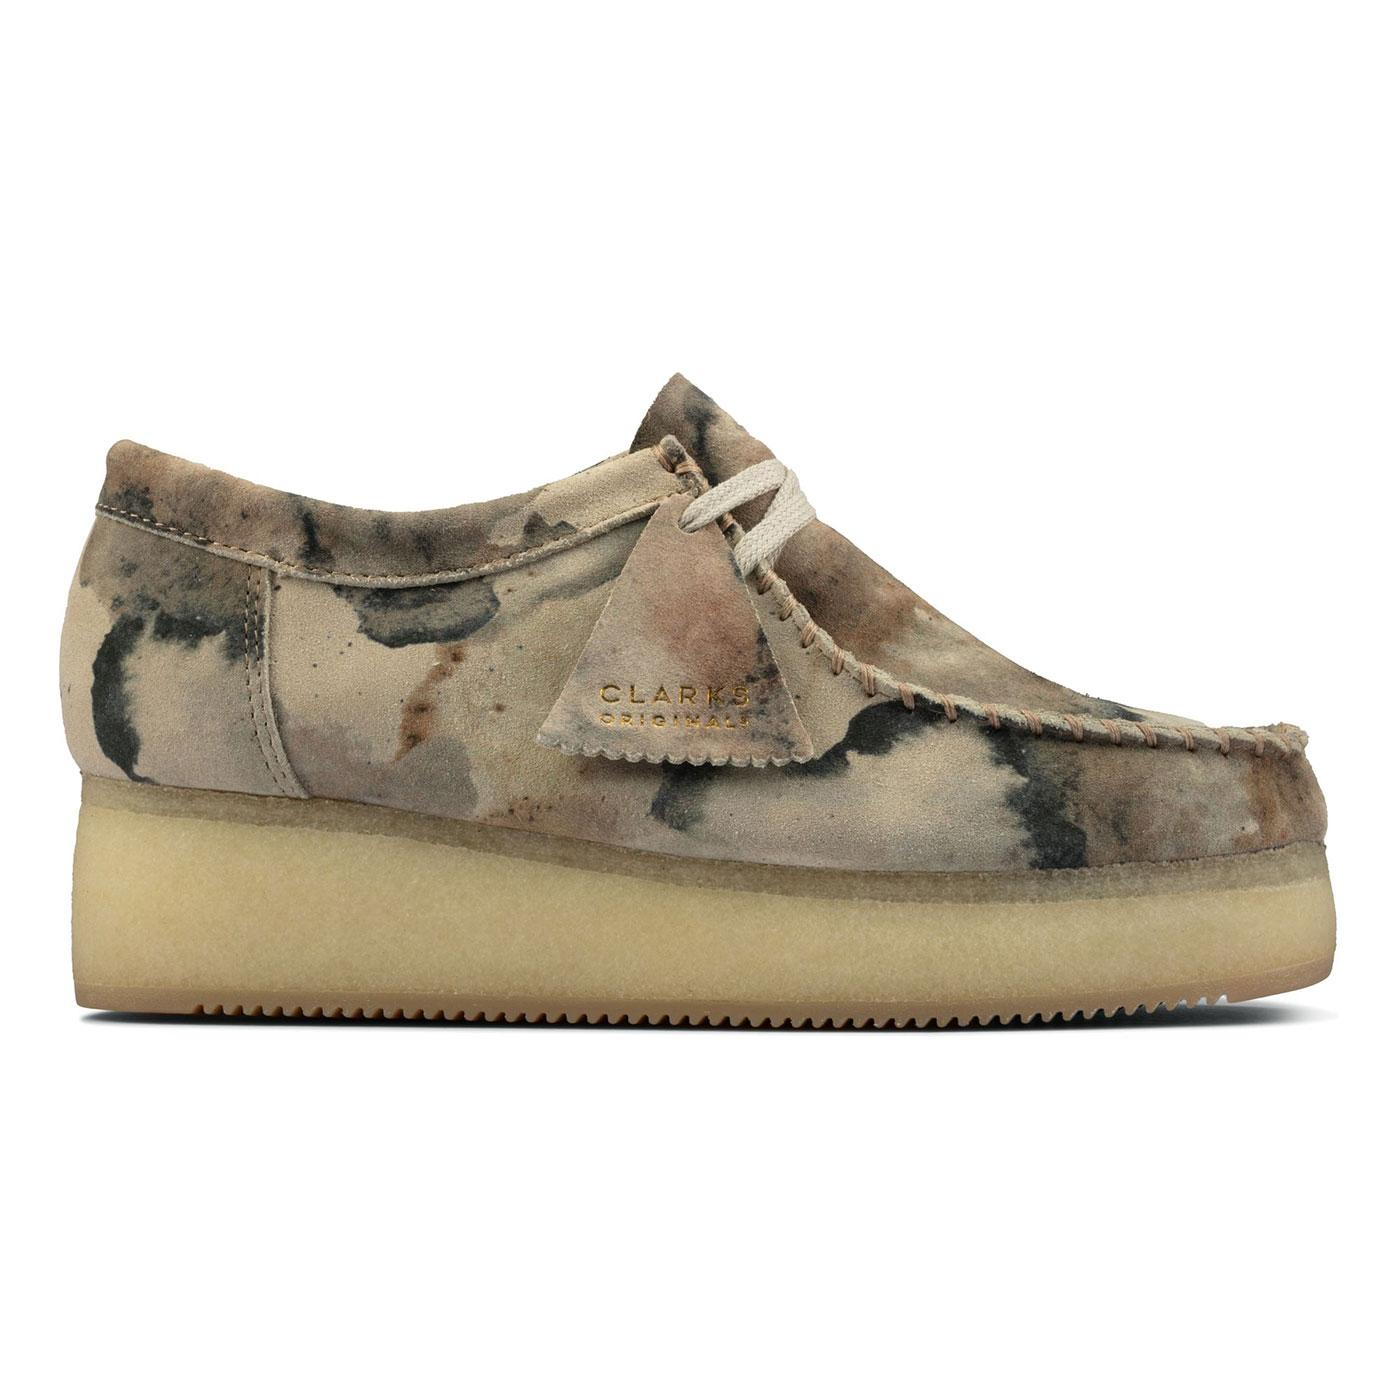 Wallacraft Lo CLARKS ORIGINALS Suede Camo Creepers